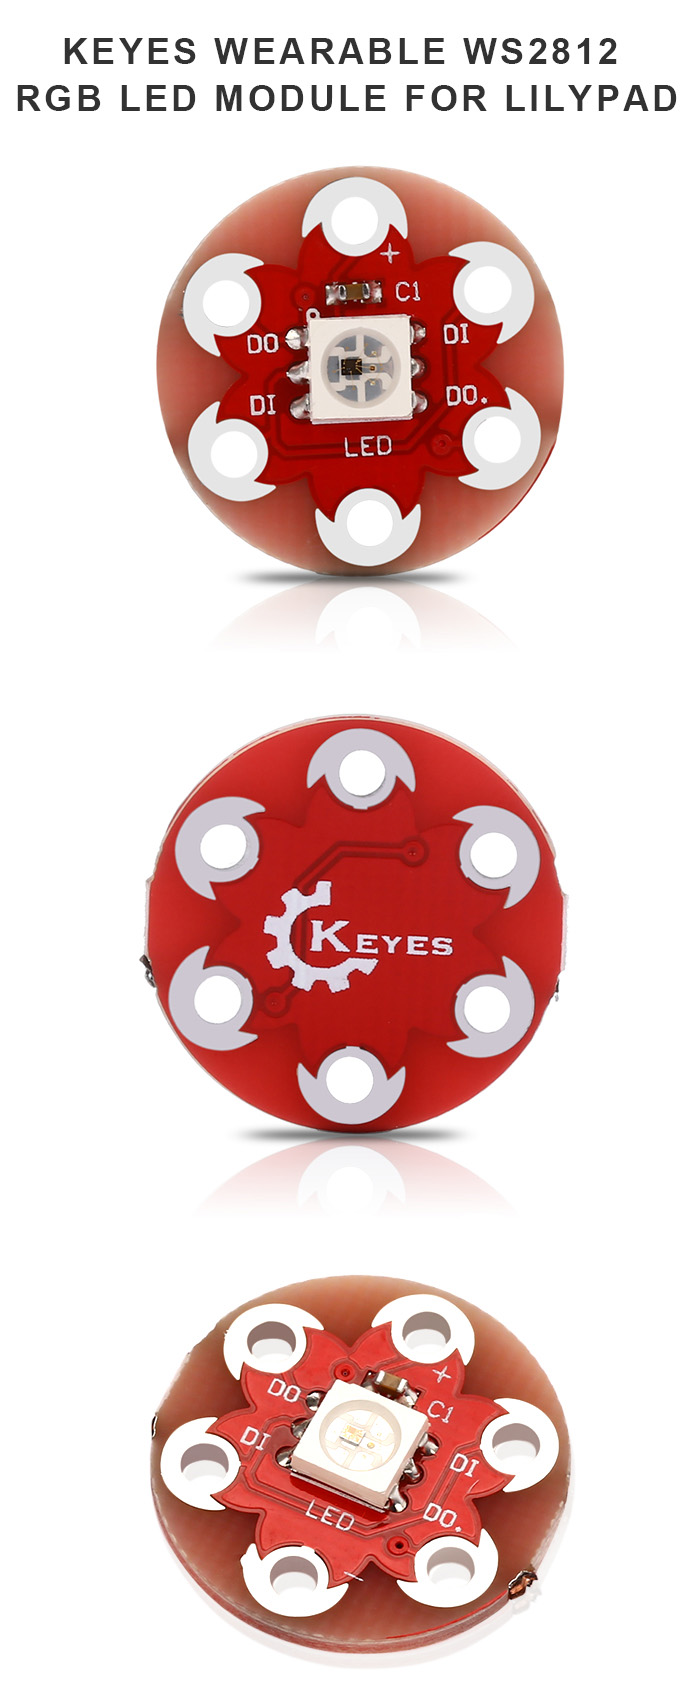 KEYES Wearable WS2812 RGB LED Module for LilyPad